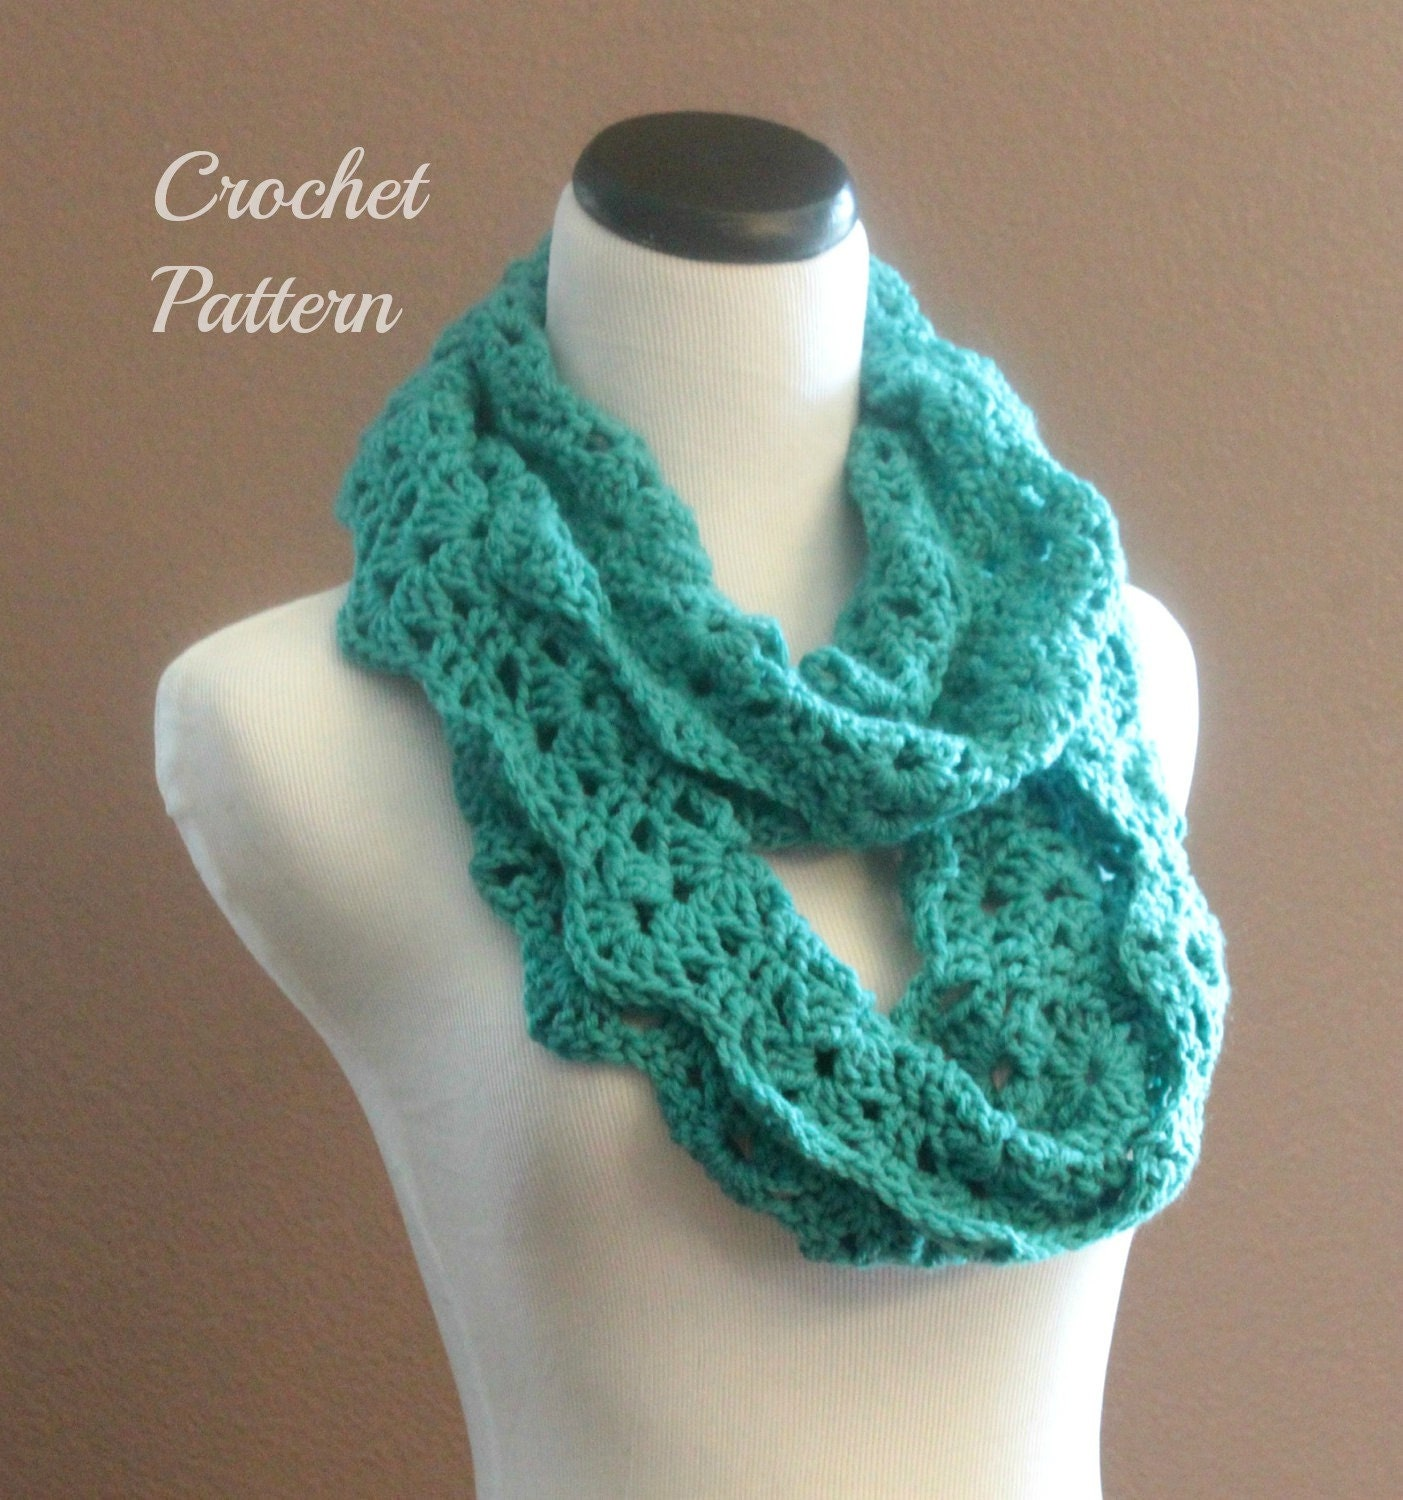 Crochet Infinity Scarf Chunky Pattern : 301 Moved Permanently